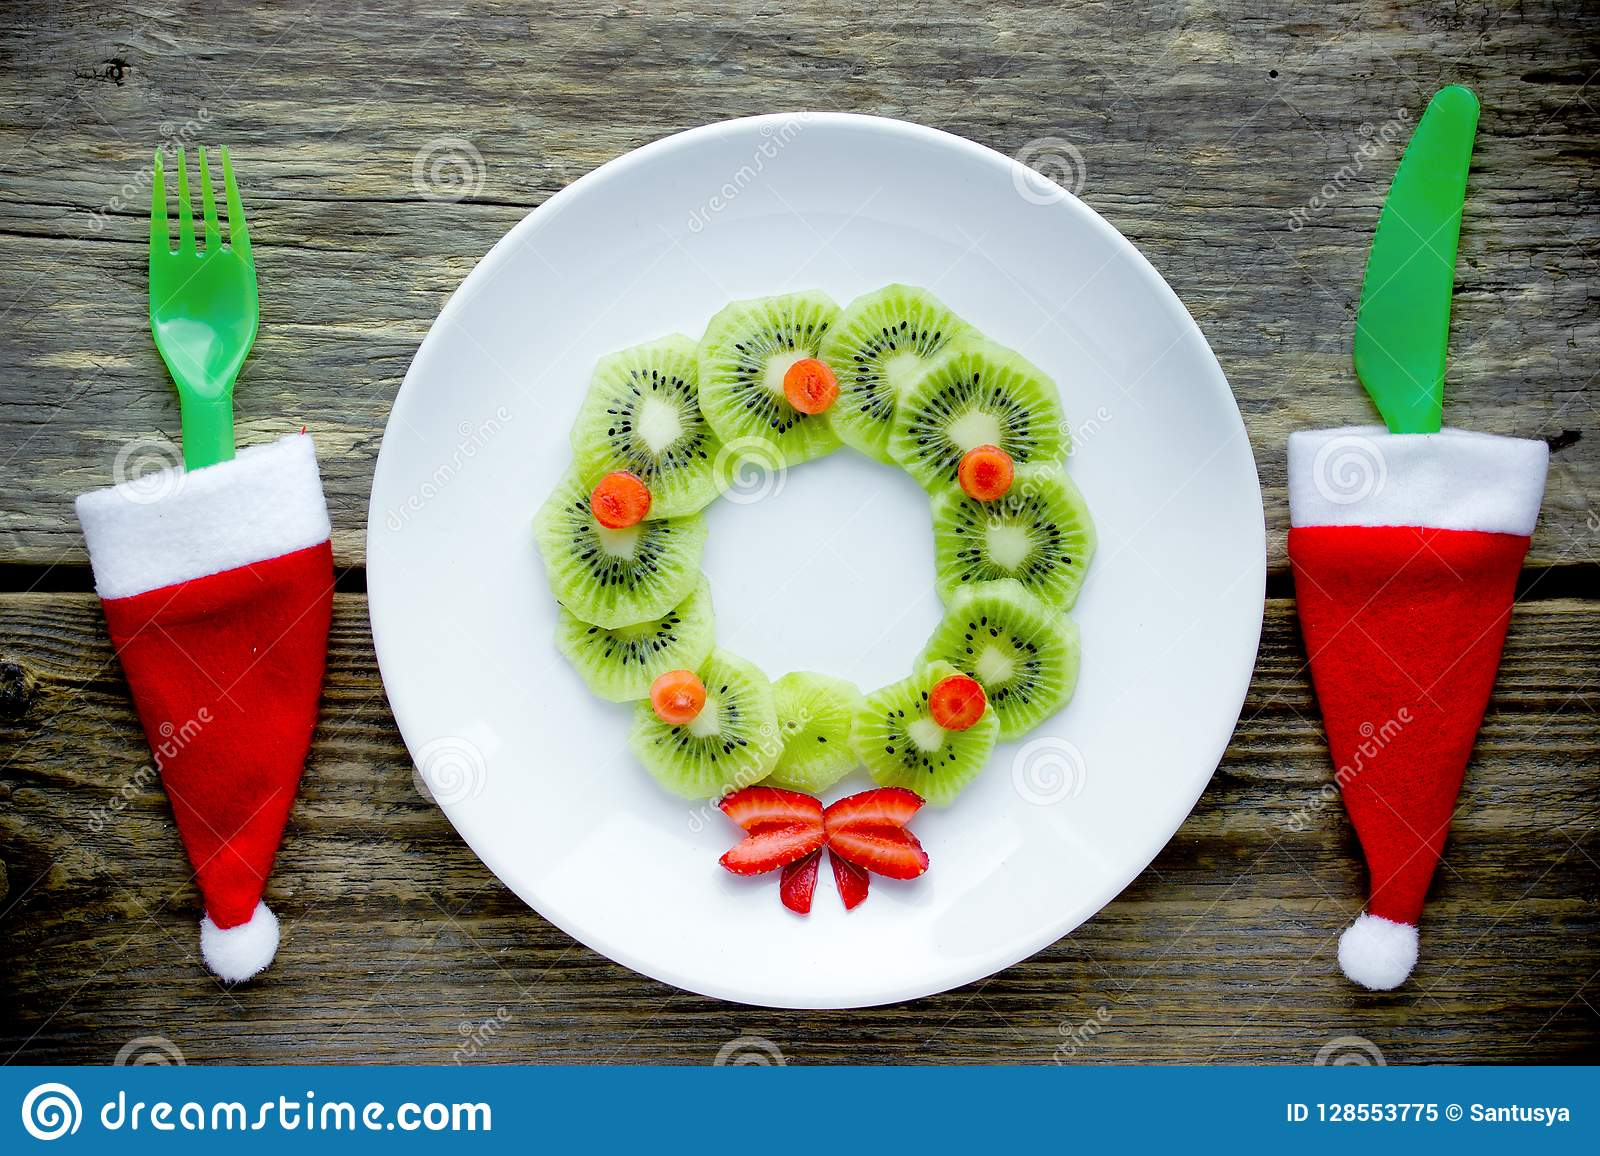 Christmas Wreath Kiwi Strawberry Fruit Plate Stock Image Image Of Lunch Party 128553775